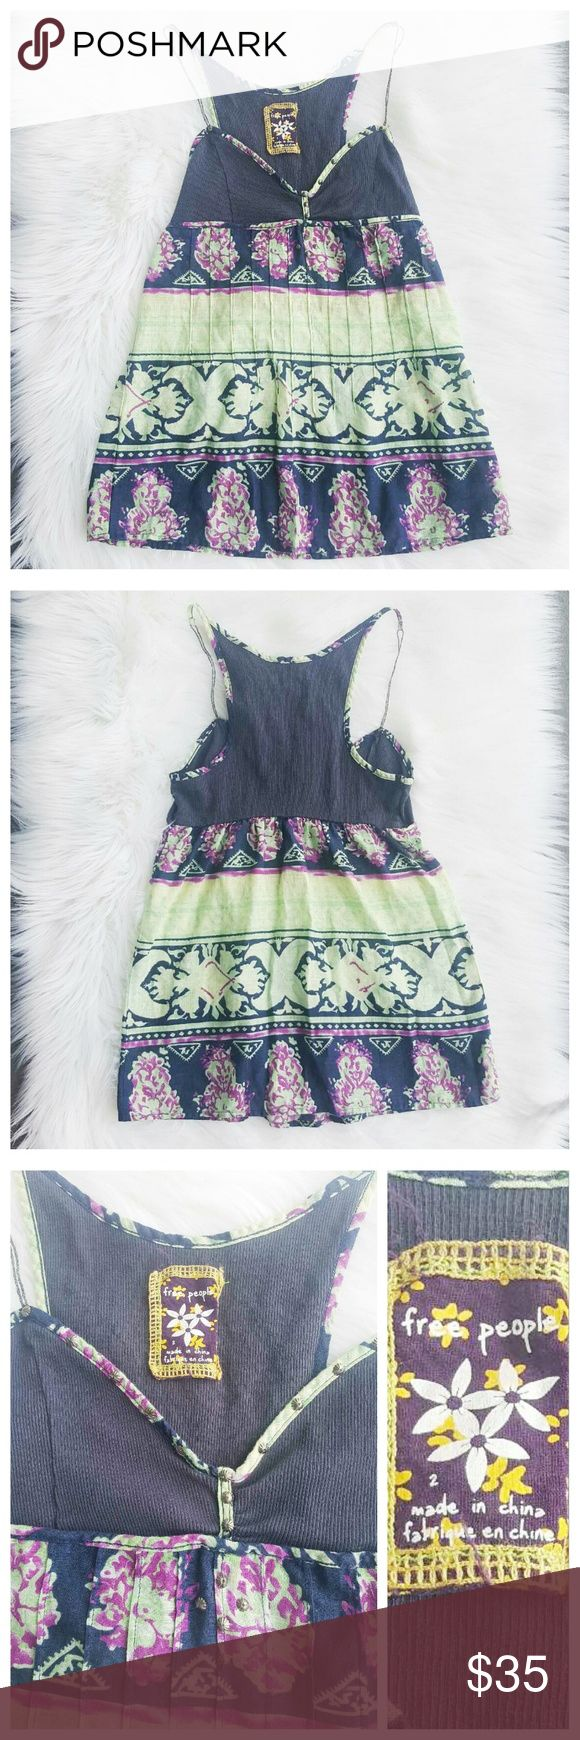 """Anthropologie Free People colorful printed top ~Bust: 28""""-31"""" ~Length: 23"""" ~Stretchy: Yes, in the just area ~Material: 100% Cotton  ~Condition: Excellent like brand Bew ~Care: Hand wash Cold  ~Size: 2  This top was sold in the store Anthropologie. Anthropologie Tops Tank Tops"""